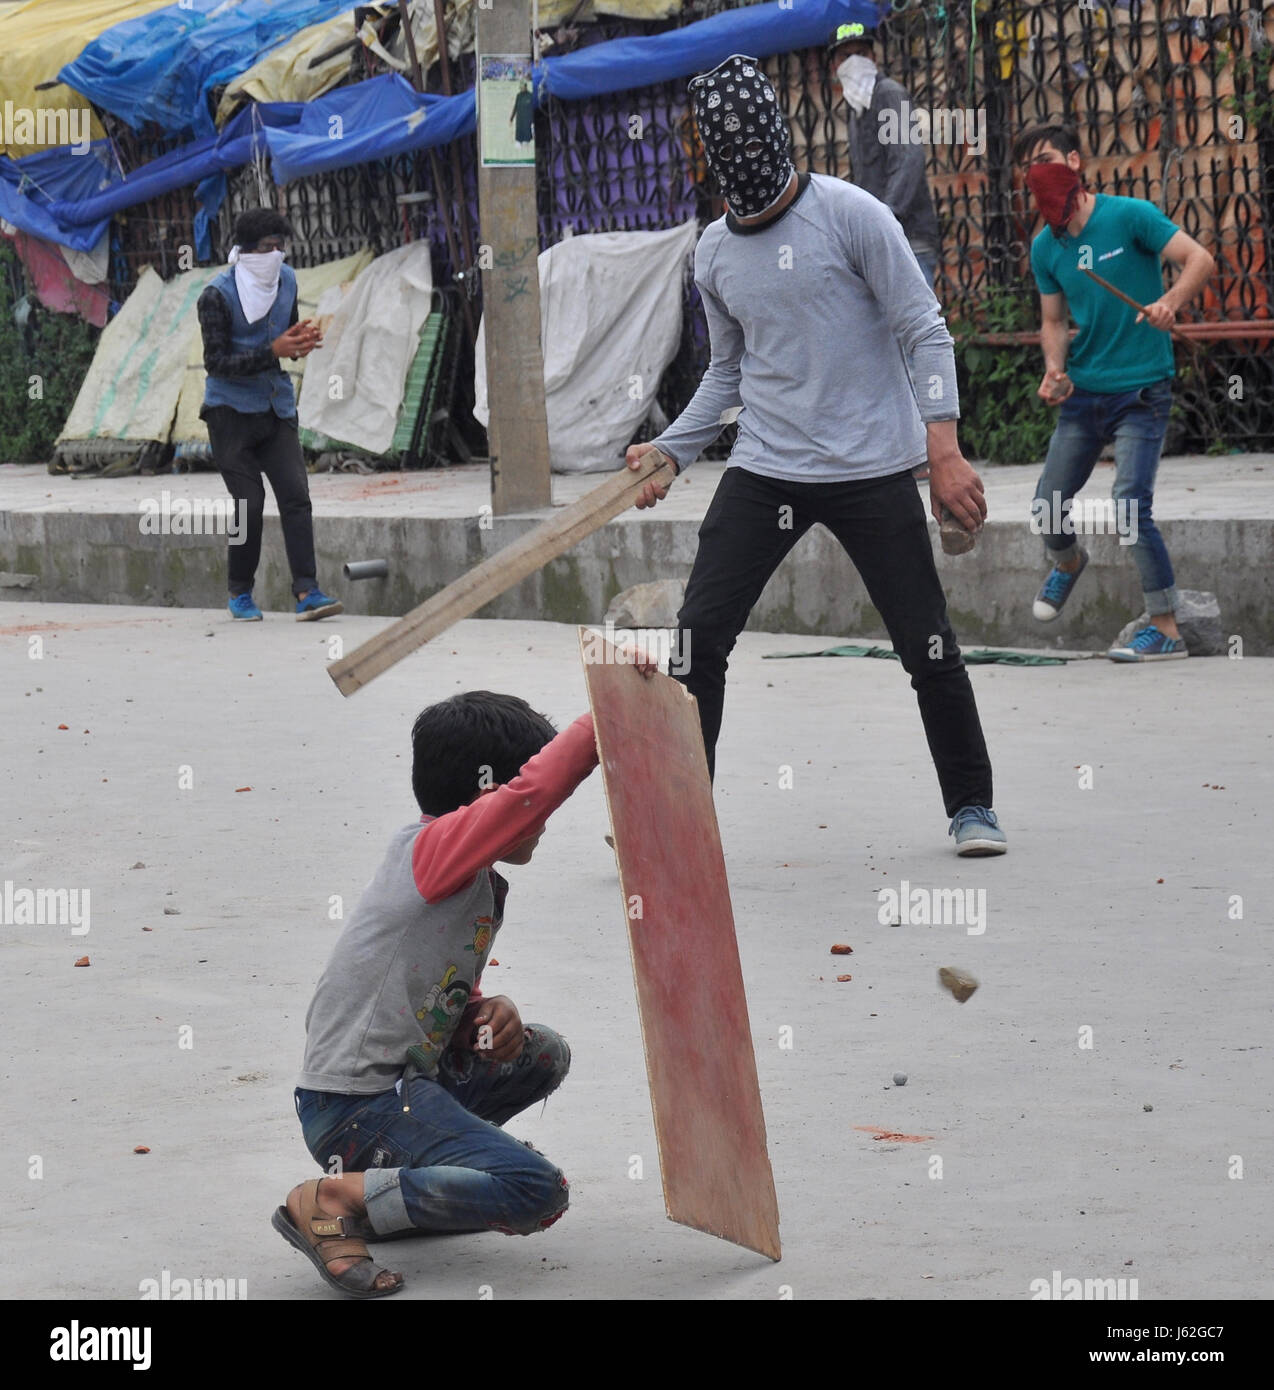 Srinagar, Kashmir. 19th May, 2017. Young Kashmiri boy uses a plywood for sheild  against stones hurled by security - Stock Image